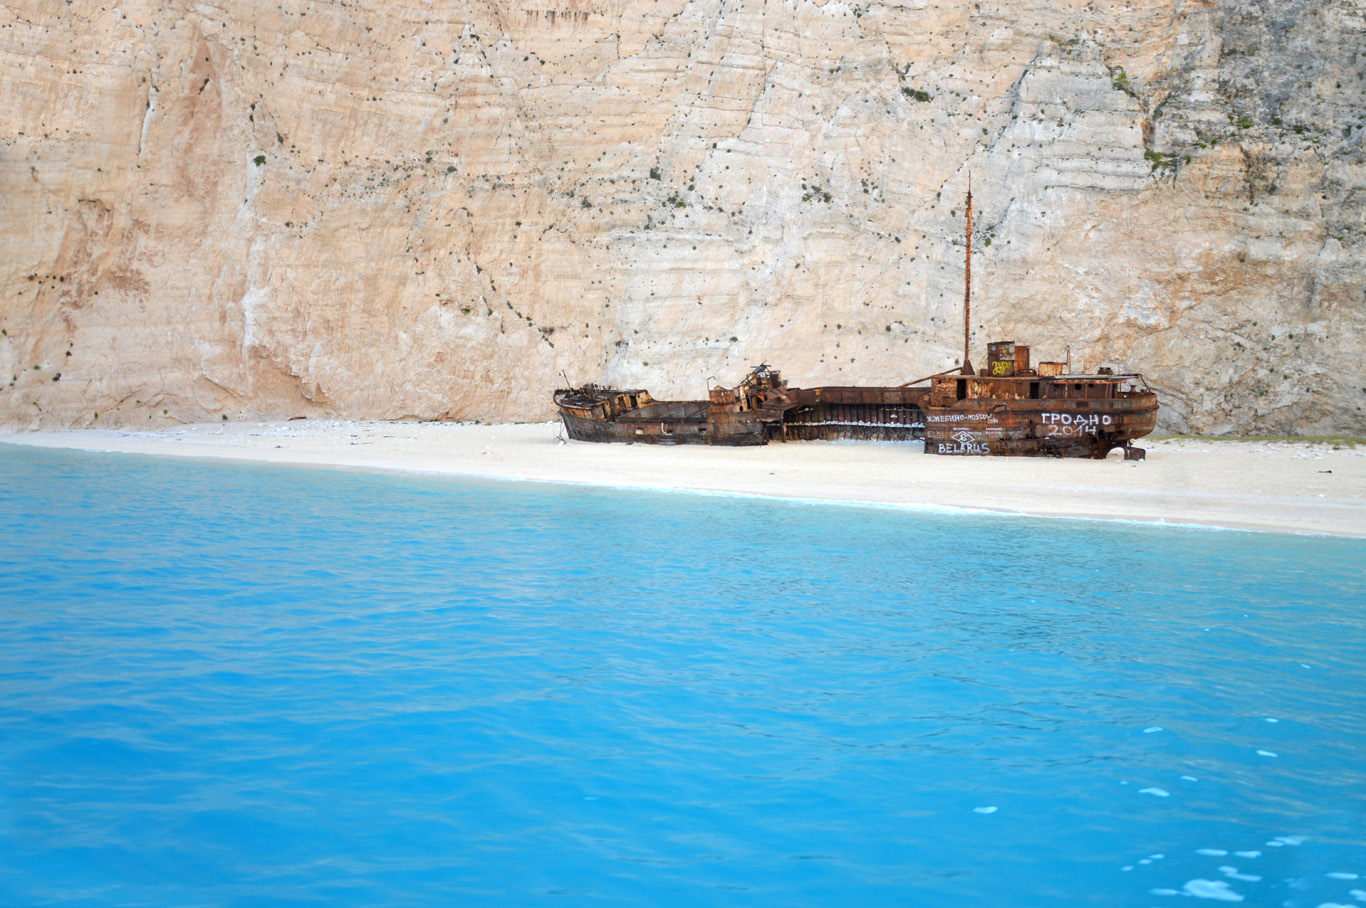 Approaching the empty shipwreck beach